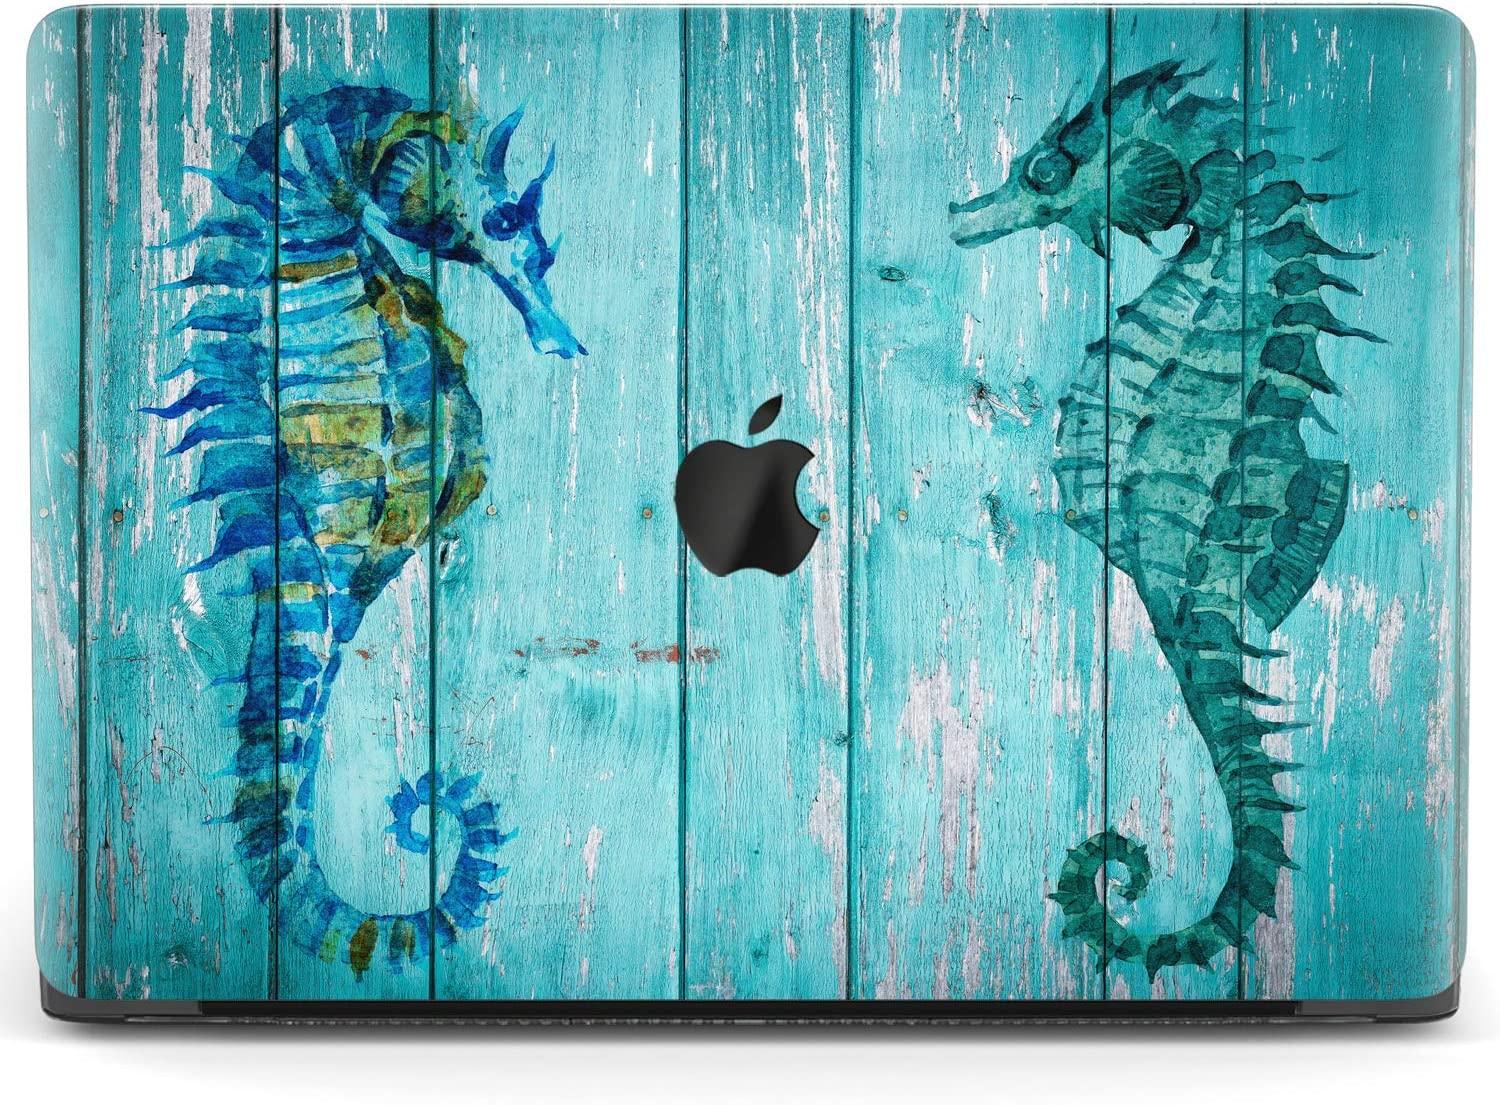 Mertak Hard Case for Apple MacBook Pro 16 Air 13 inch Mac 15 Retina 12 11 2020 2019 2018 2017 Shell Nautical Cover Design Wood Touch Bar Print Blue Ocean Seahorse Laptop Sea Fish Protective Girly